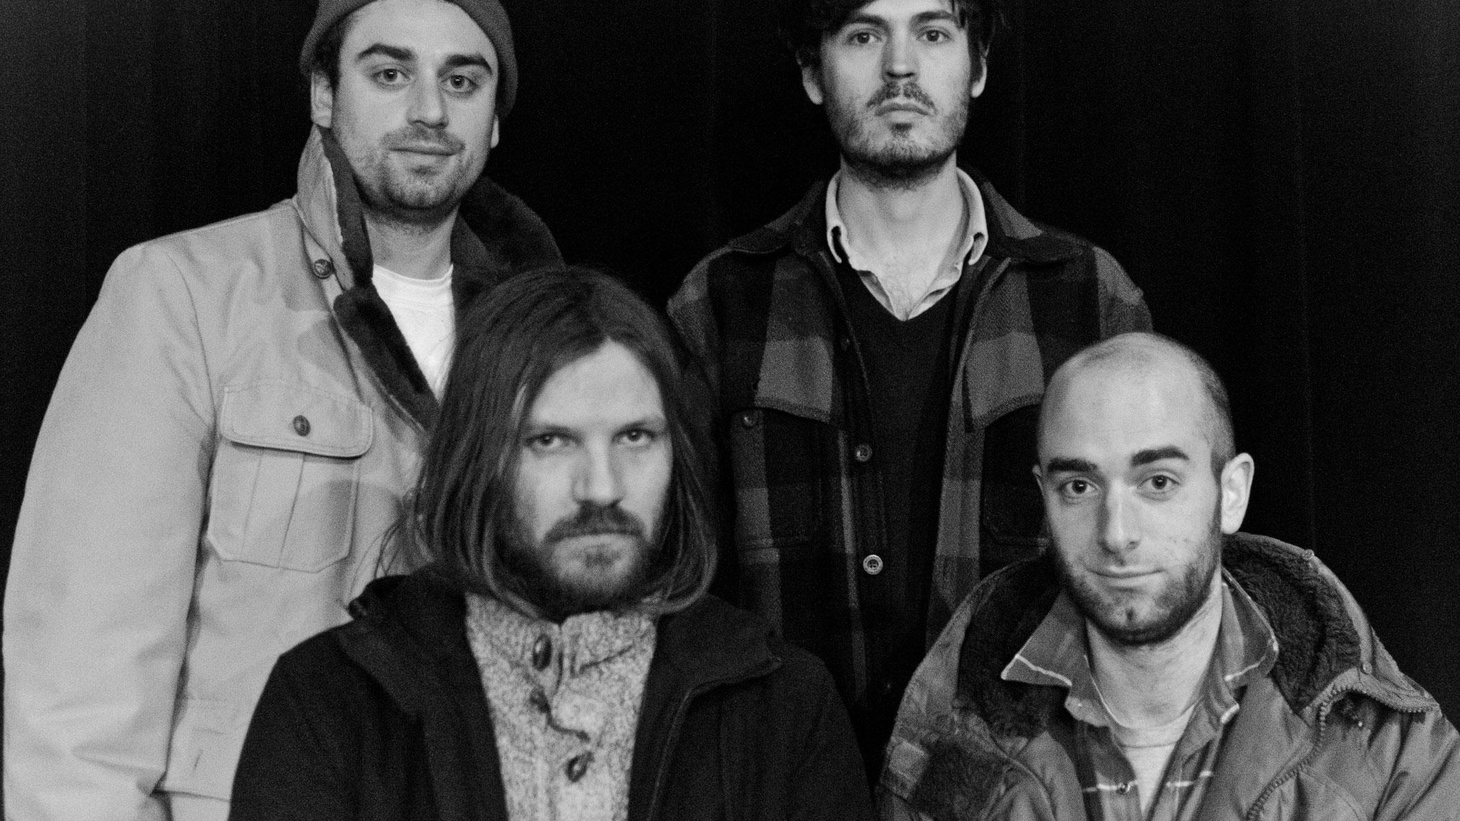 Christian Wargo and Casey Wescott of Fleet Foxes team up with brothers Ian and Peter Murray to pursue their poppier side as the band Poor Moon.